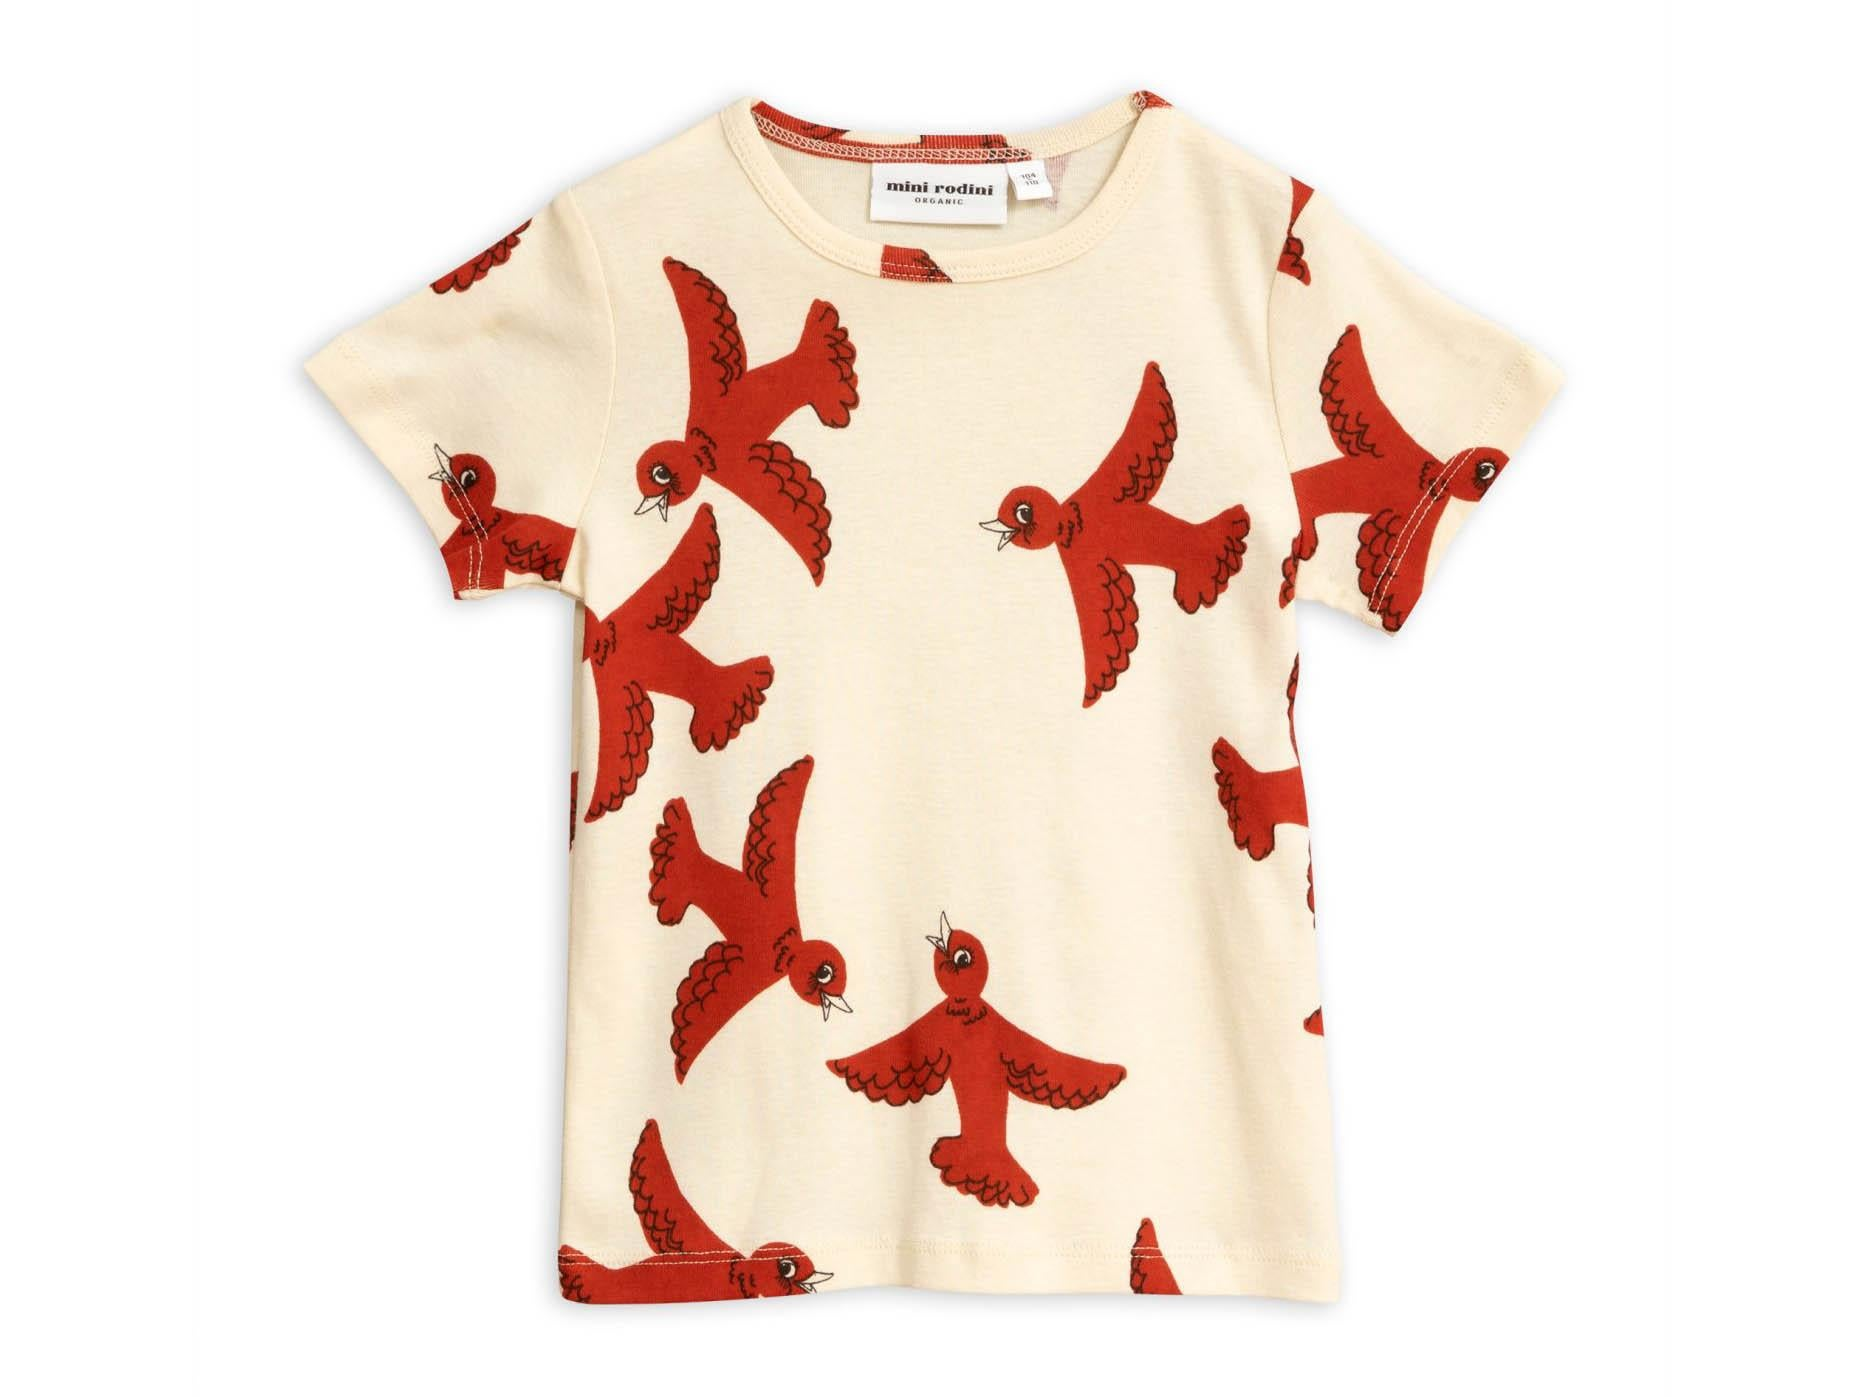 7fb22f7ed Best brands for gender-neutral baby clothes that deliver on quality ...